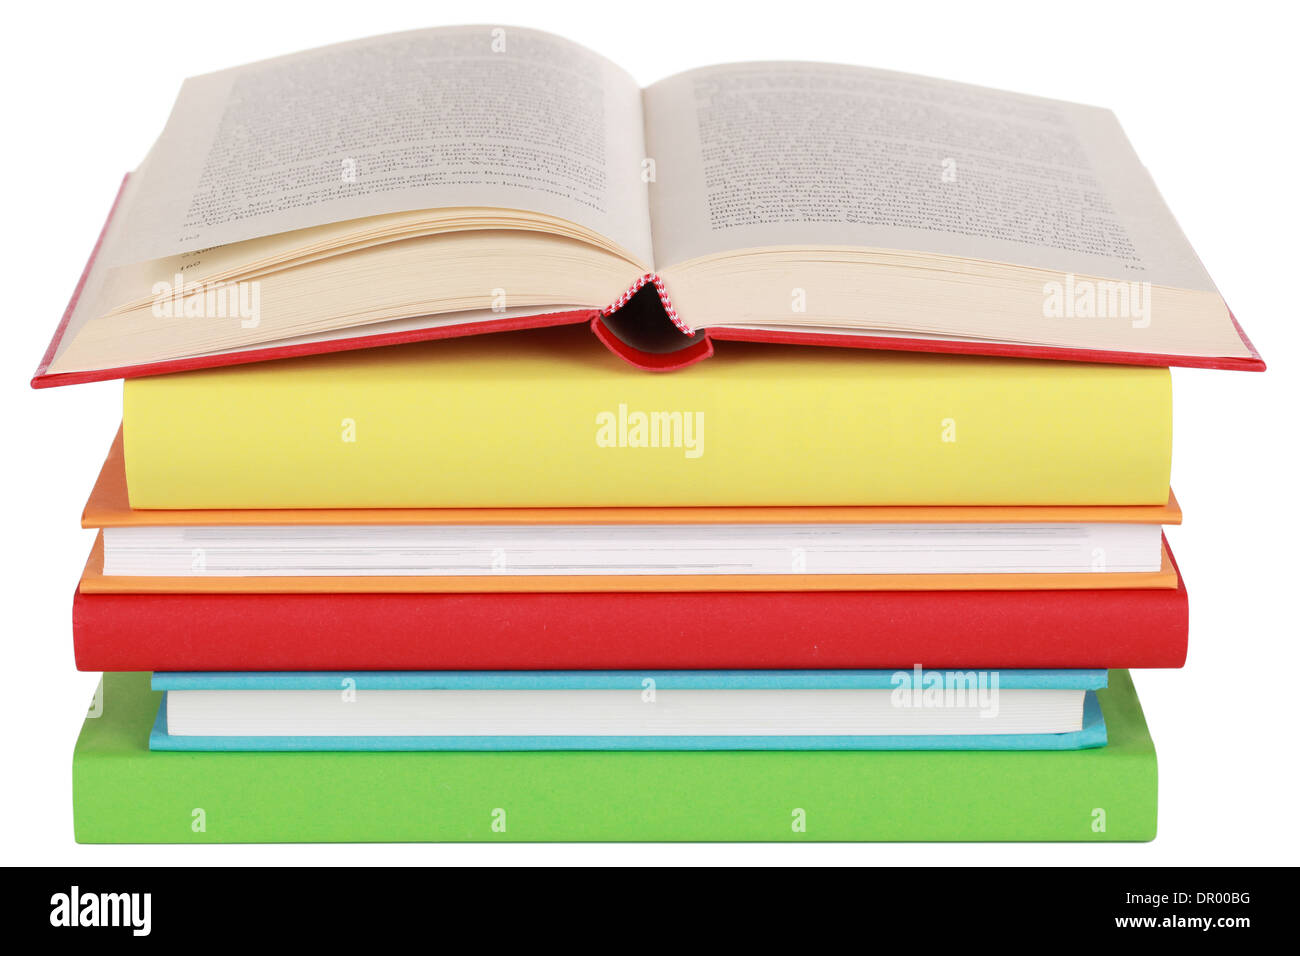 Opened book on a stack, isolated on a white background Stock Photo